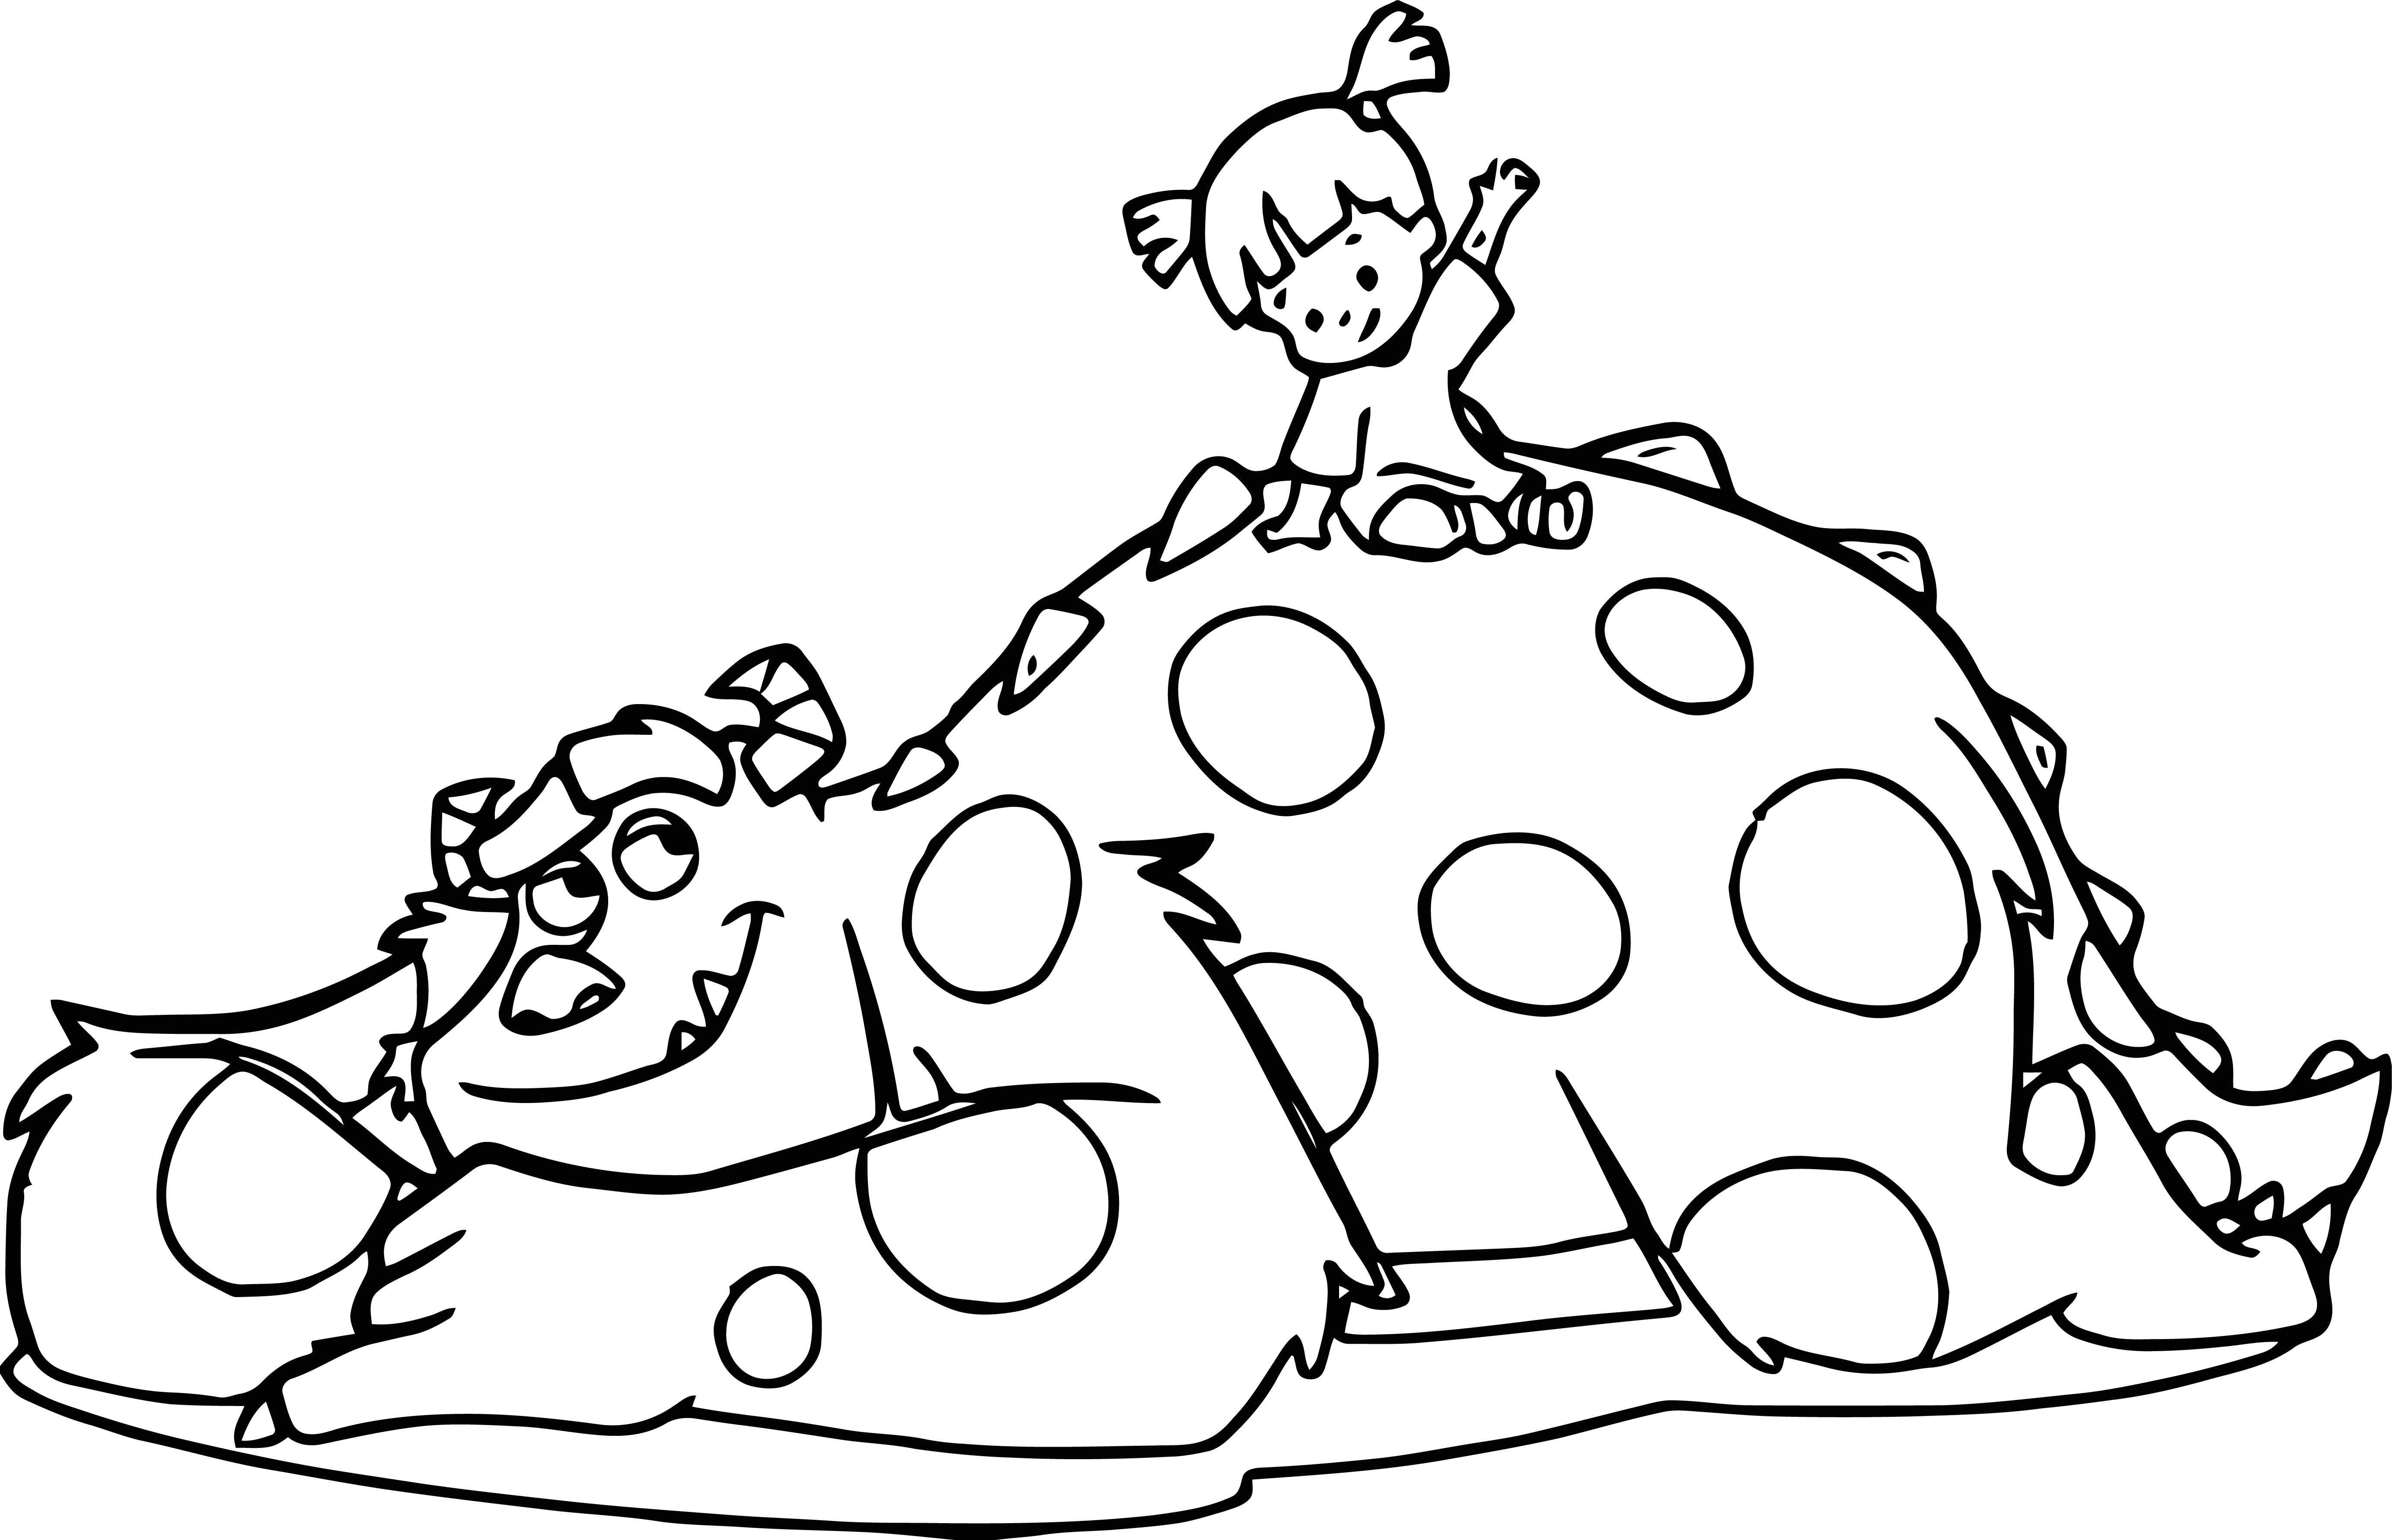 Booc Coloring Pages